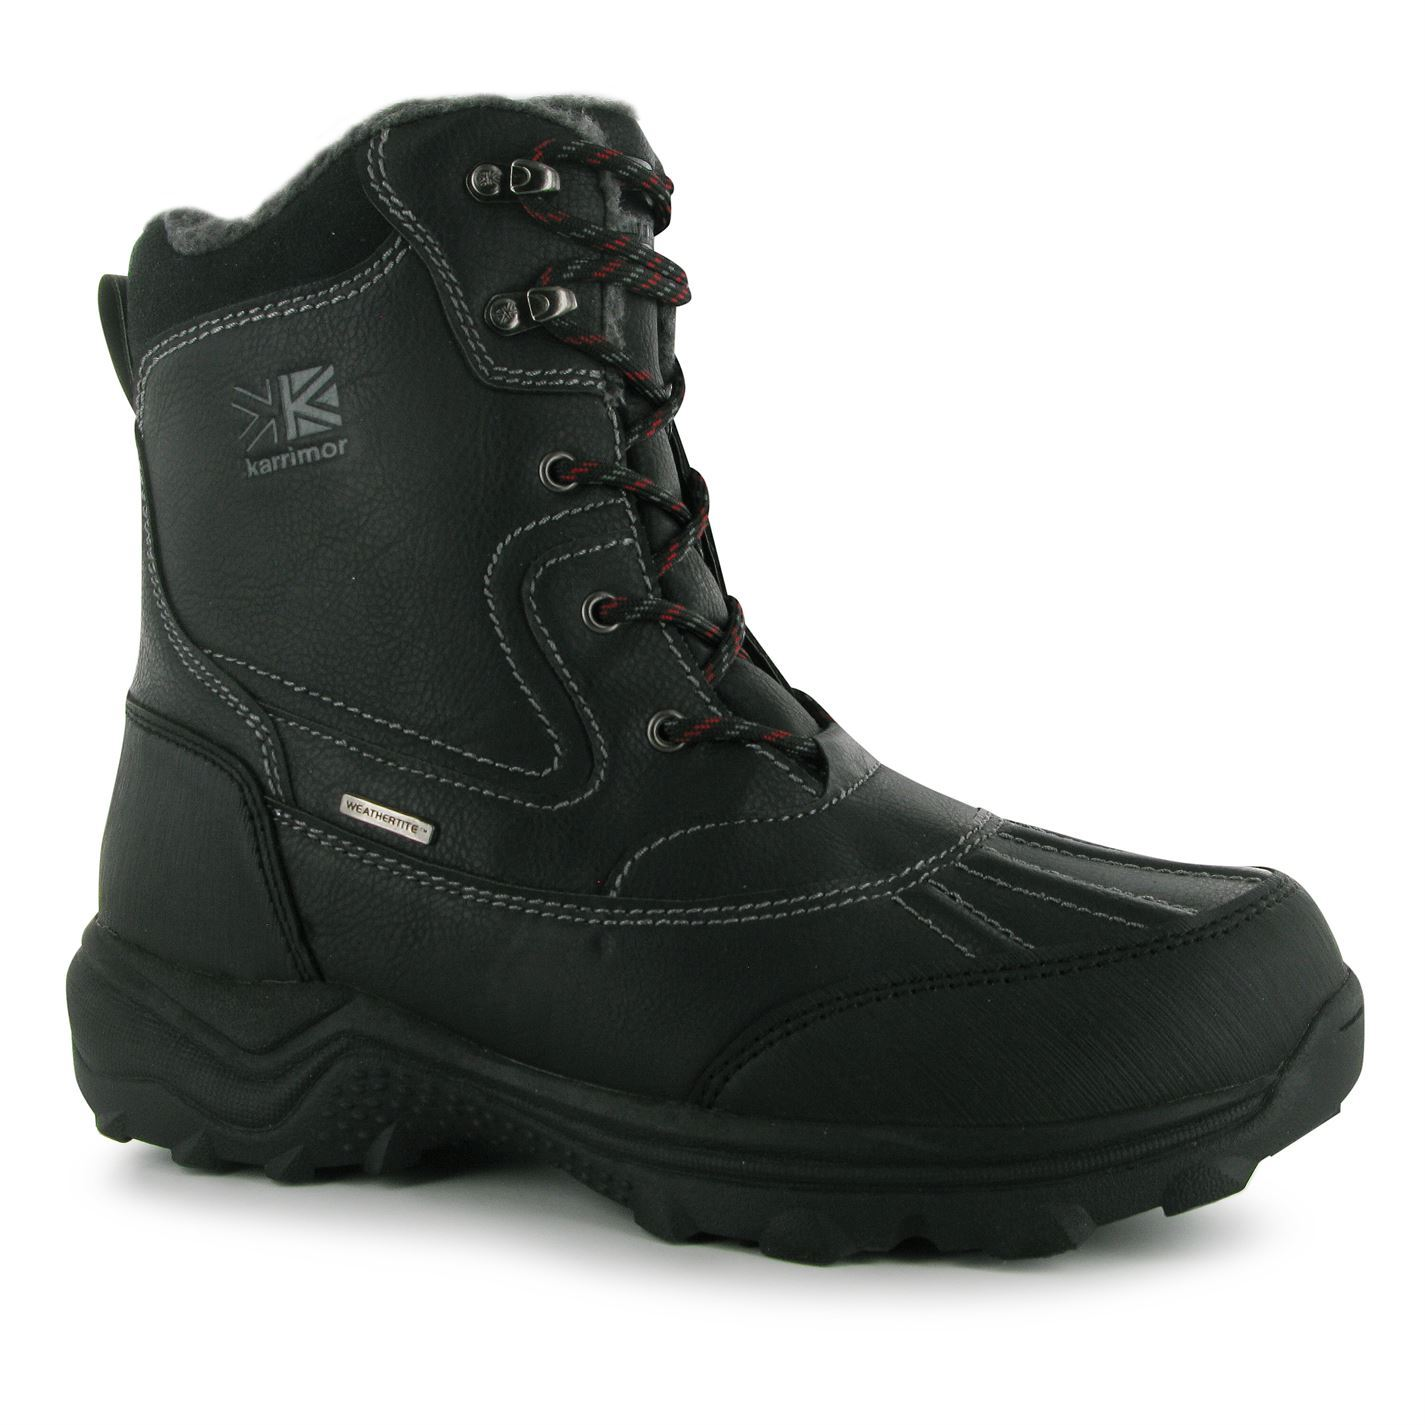 karrimor mens casual snow boots cushioned insole lace up